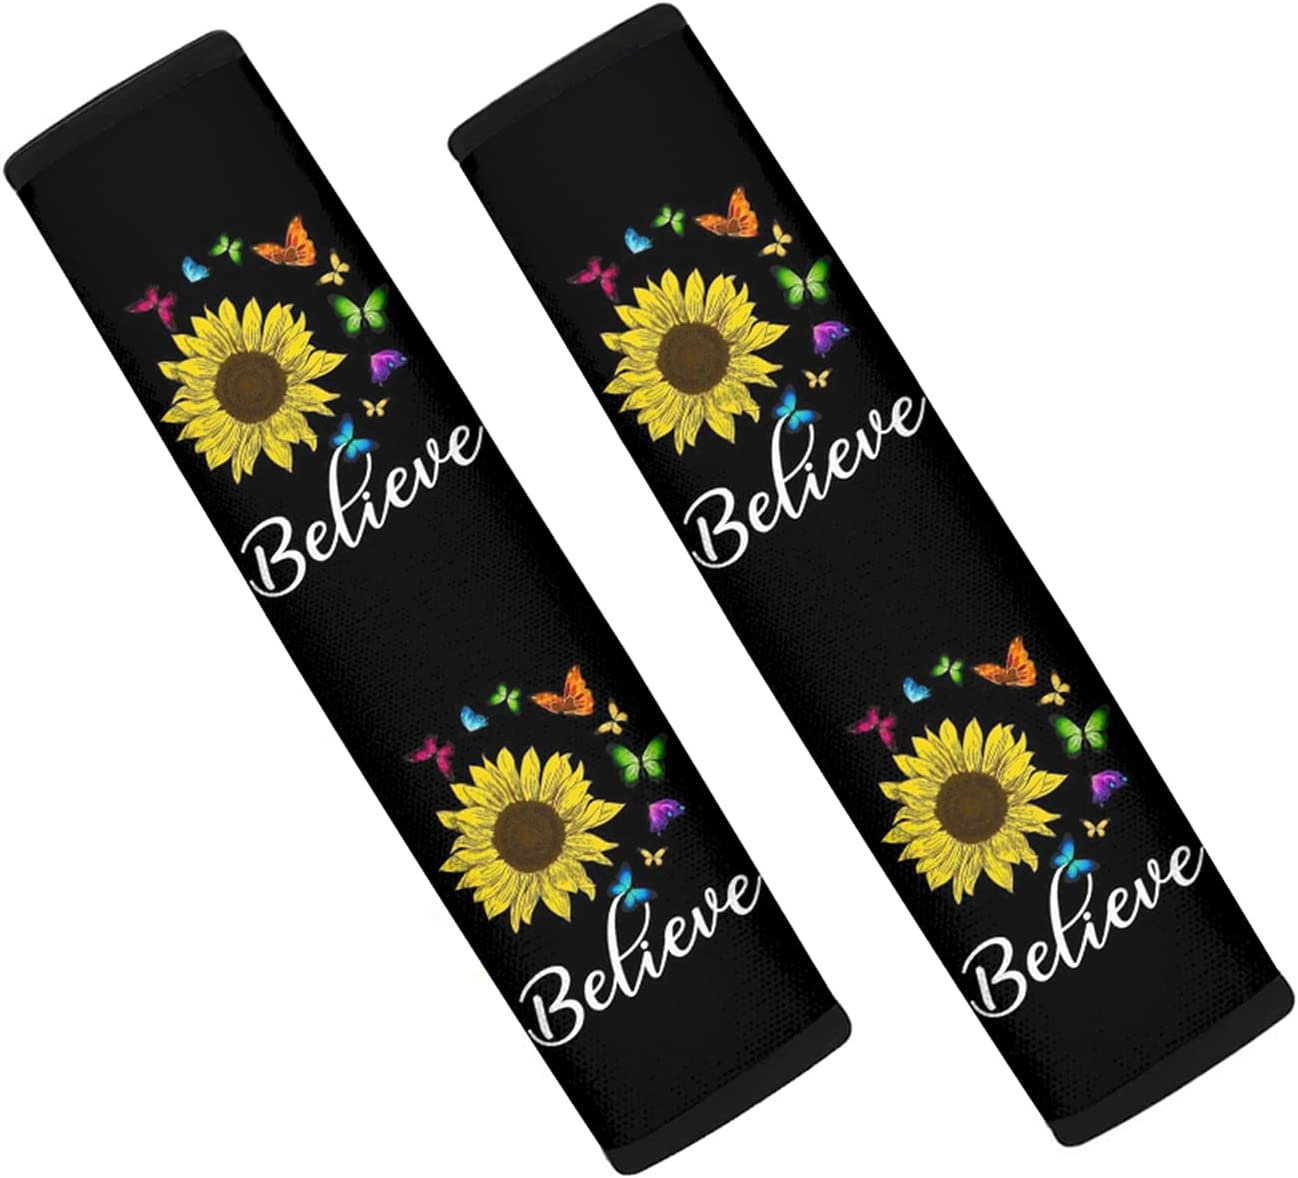 UZZUHI Sunflower Butterfly Car Seat Belt Covers, Believe Print 2PCS Soft Car Belt Protector Shoulder Seatbelt Pad for Adults Youth Kids, Fit for Car and Backpack Straps